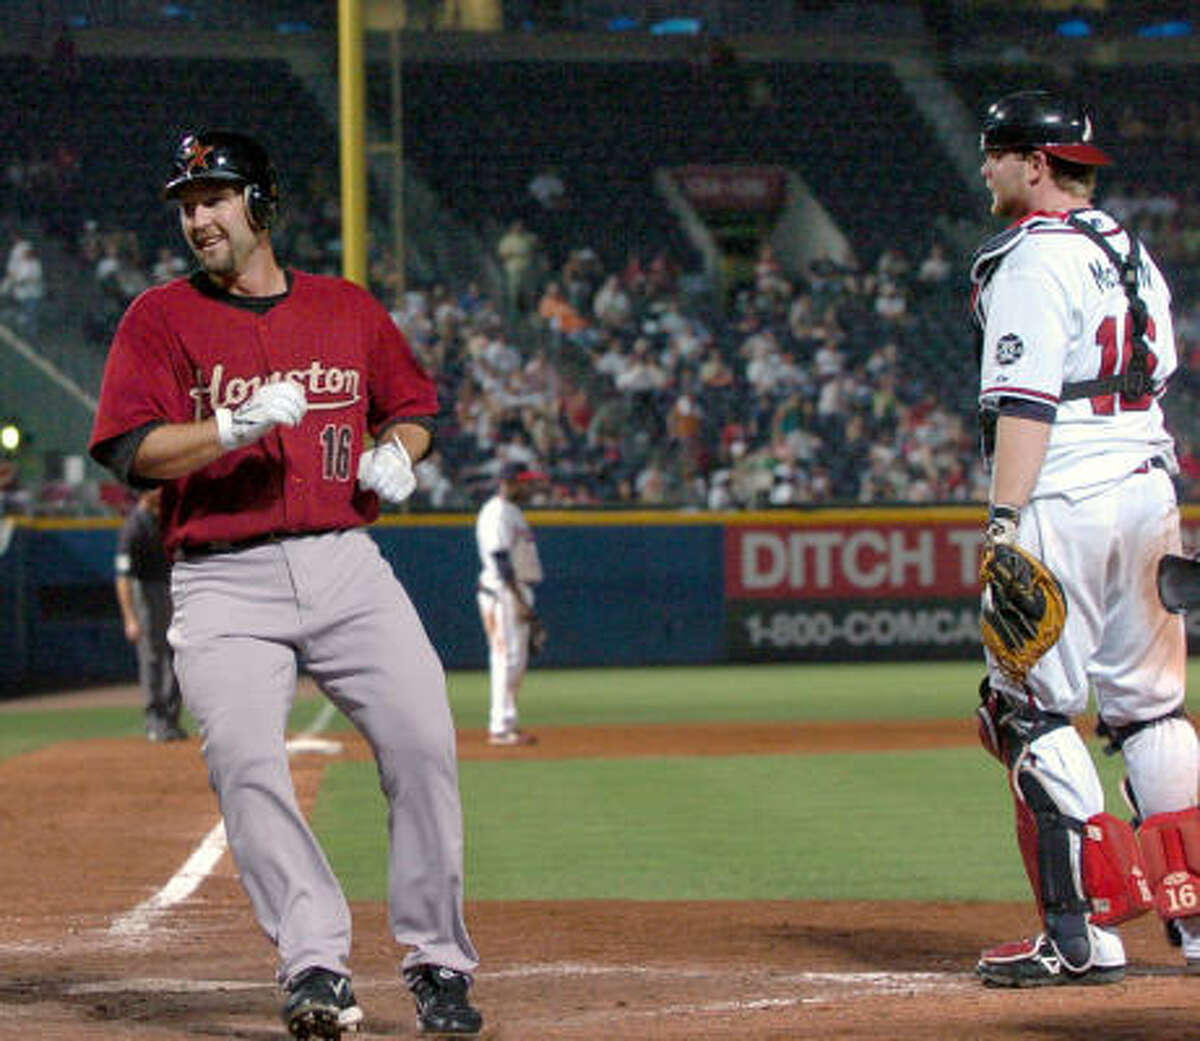 Jason Lane smiles as he runs past Braves catcher Brian McCann to score the go-ahead run on a single by pitcher Jason Jennings in the 14th inning.